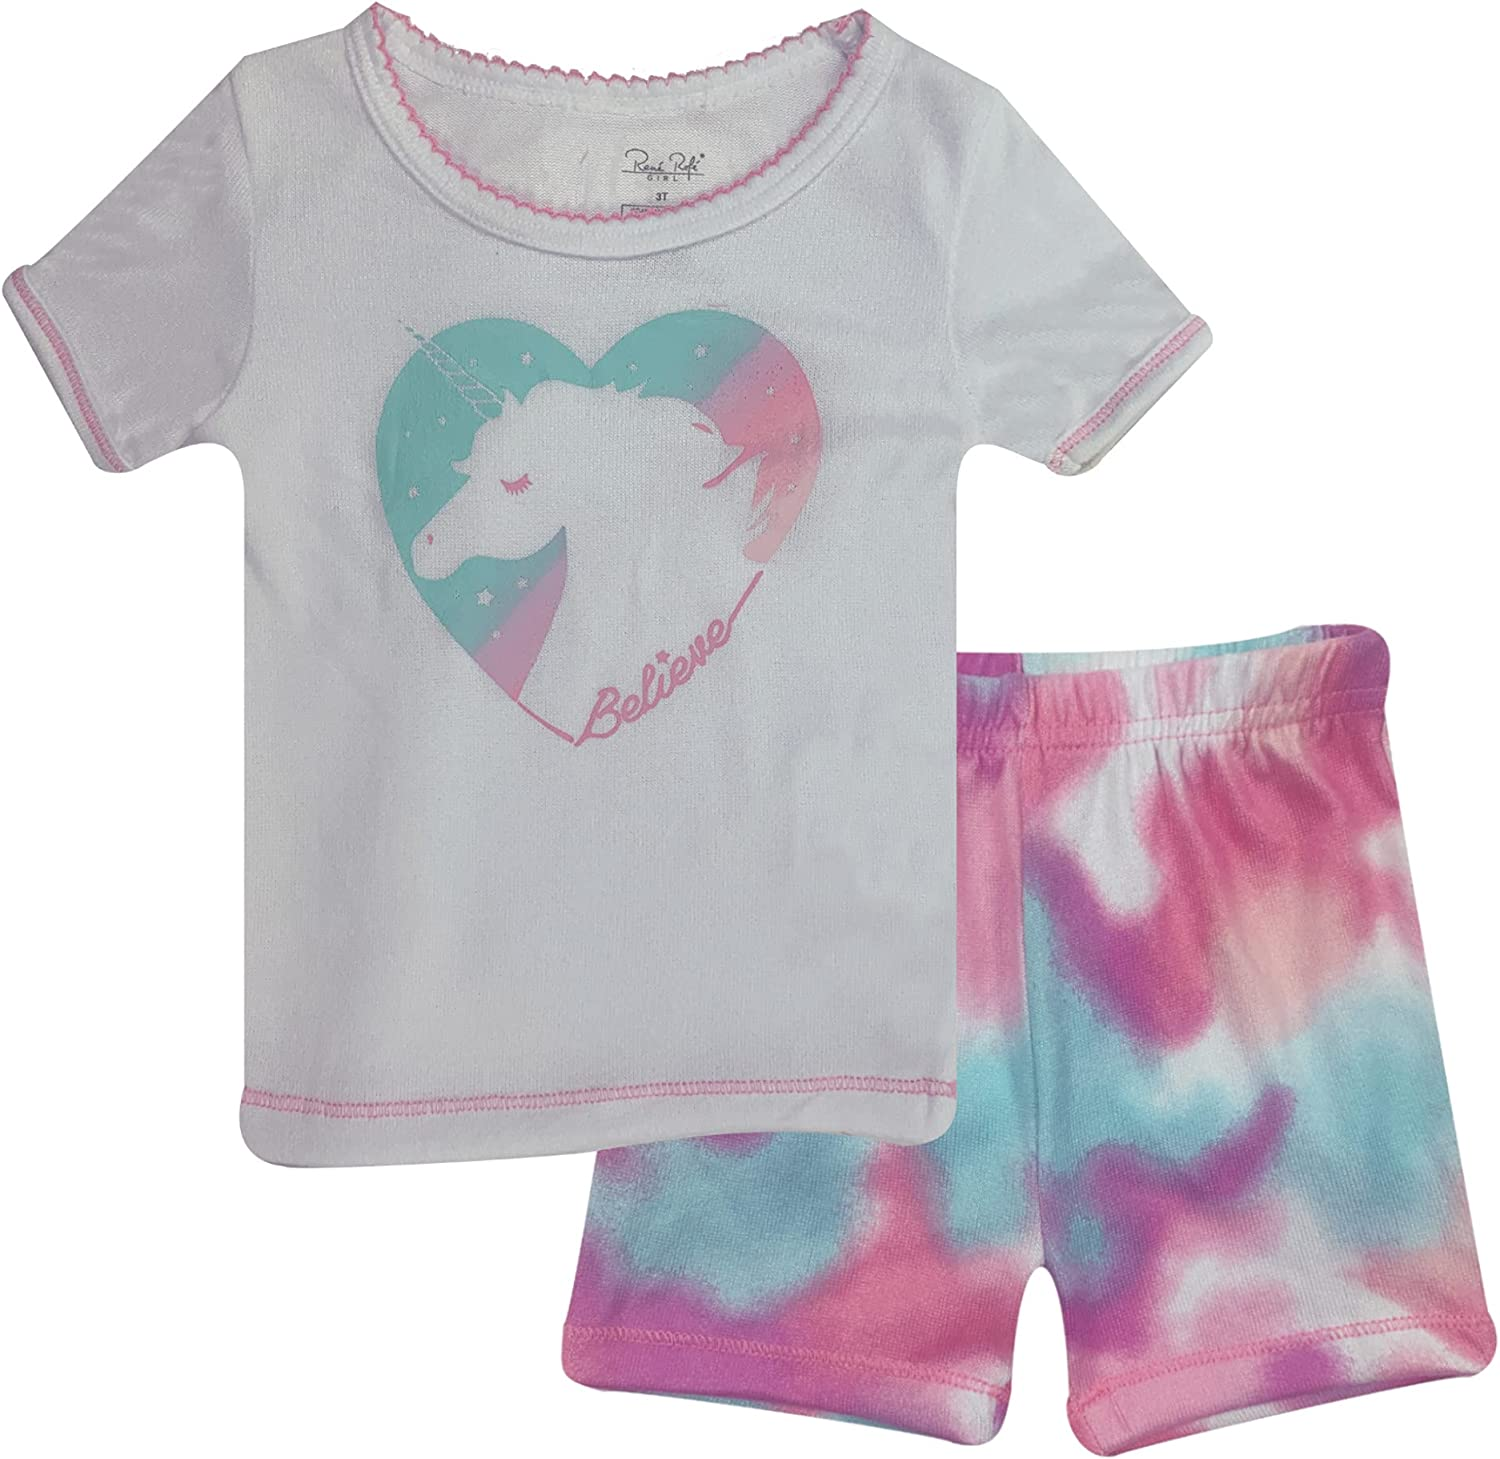 Popular Girl's Hacci Short Sleeve and Shorts - 2 Piece Set